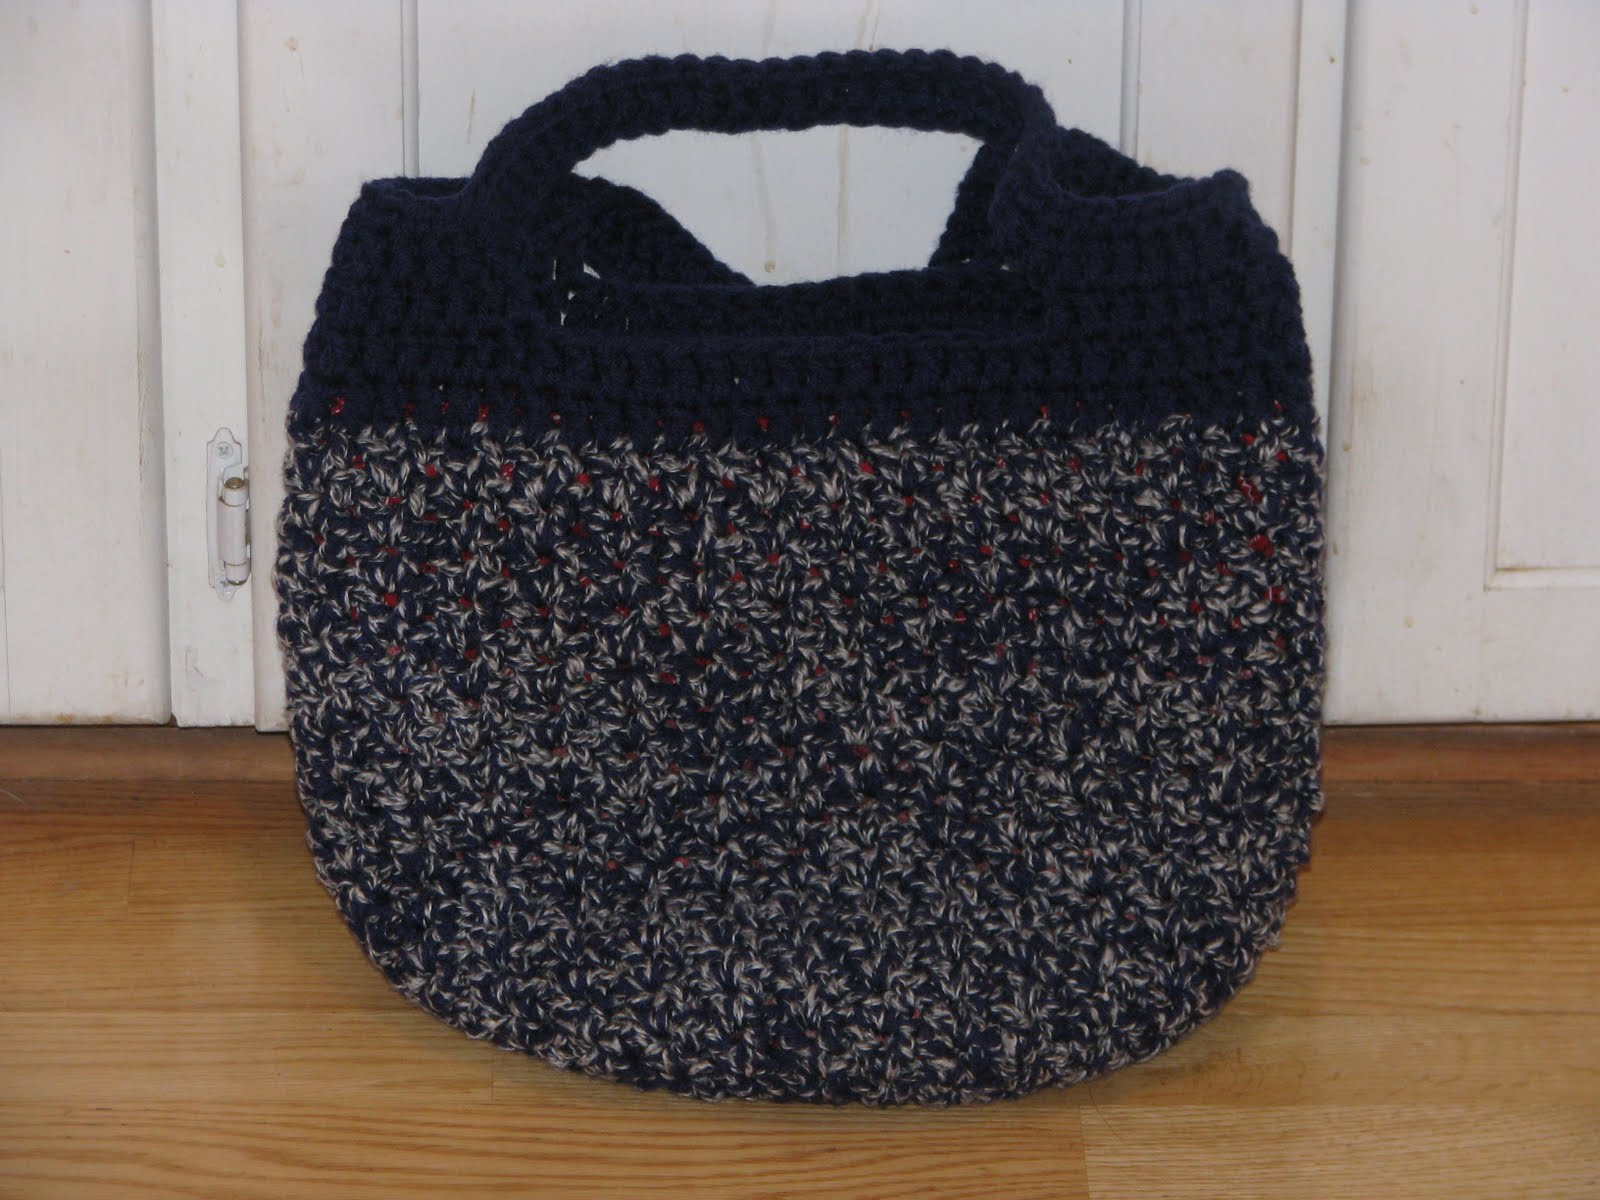 FREE CROCHET HOBO BAG PATTERN - Crochet and Knitting Patterns